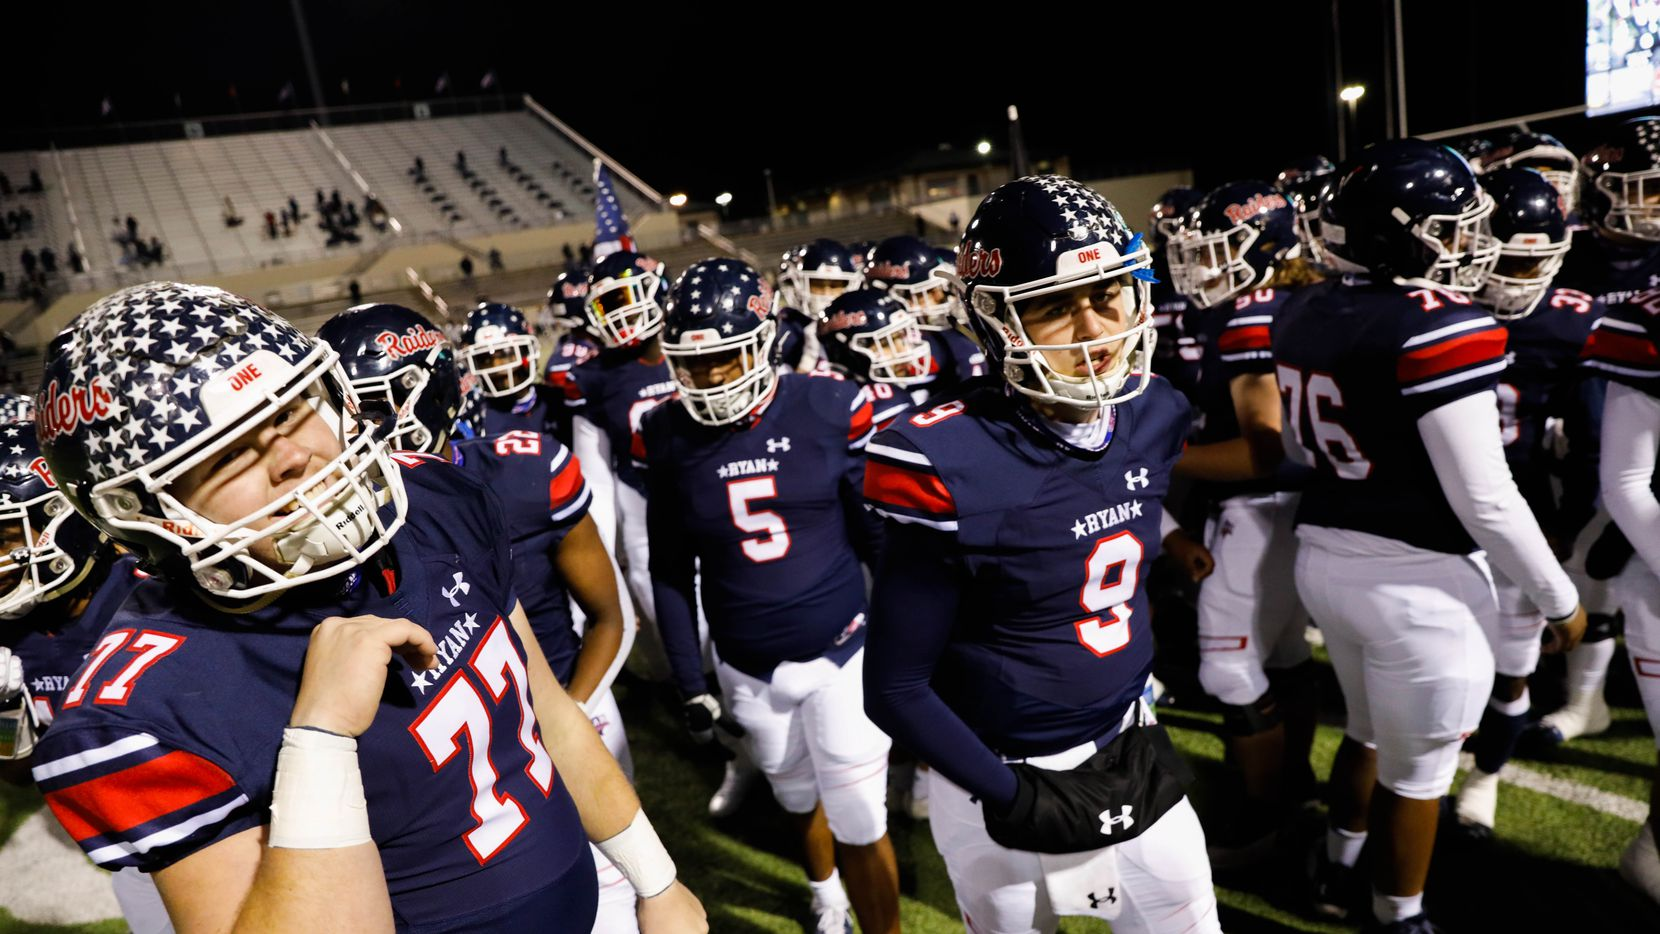 Denton Ryan's players walk to the sidelines before the start of a football game against Frisco Lone Star at the C.H. Collins Complex in Denton on Thursday, Dec. 4, 2020. The game is tied at halftime, 14-14.